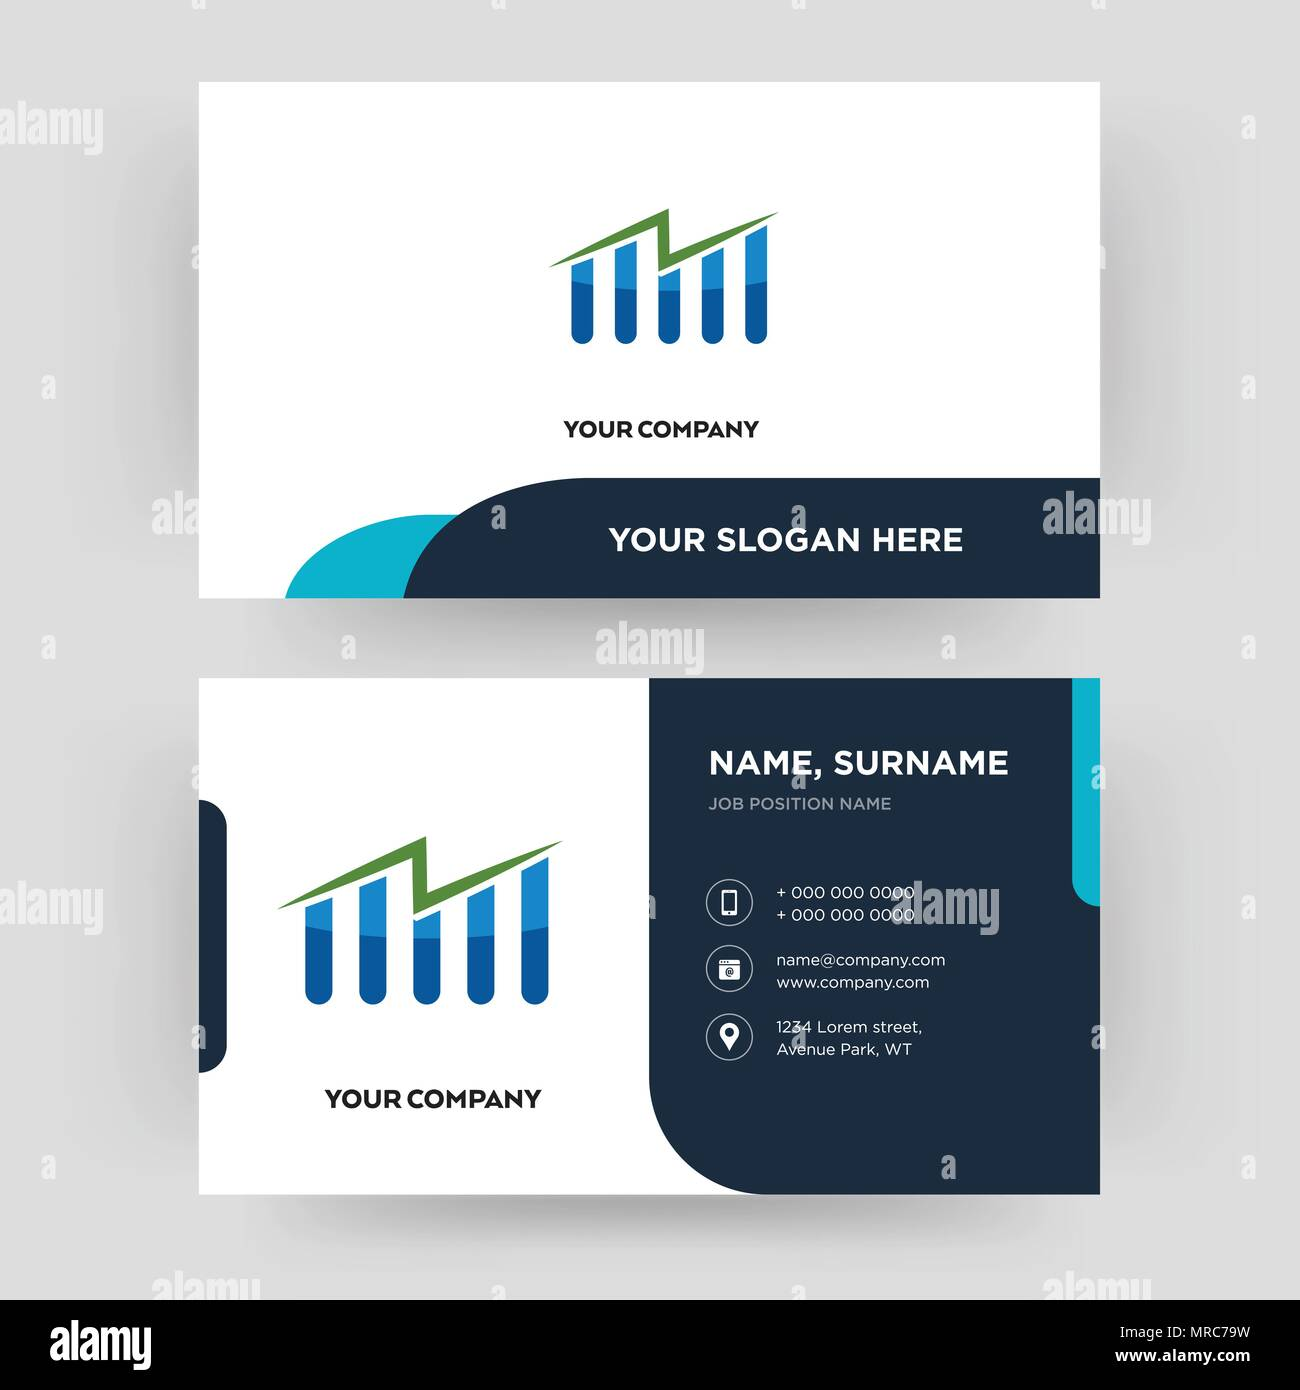 Free images download stock photos free images download stock free stock business card design template visiting for your company modern creative and reheart Images